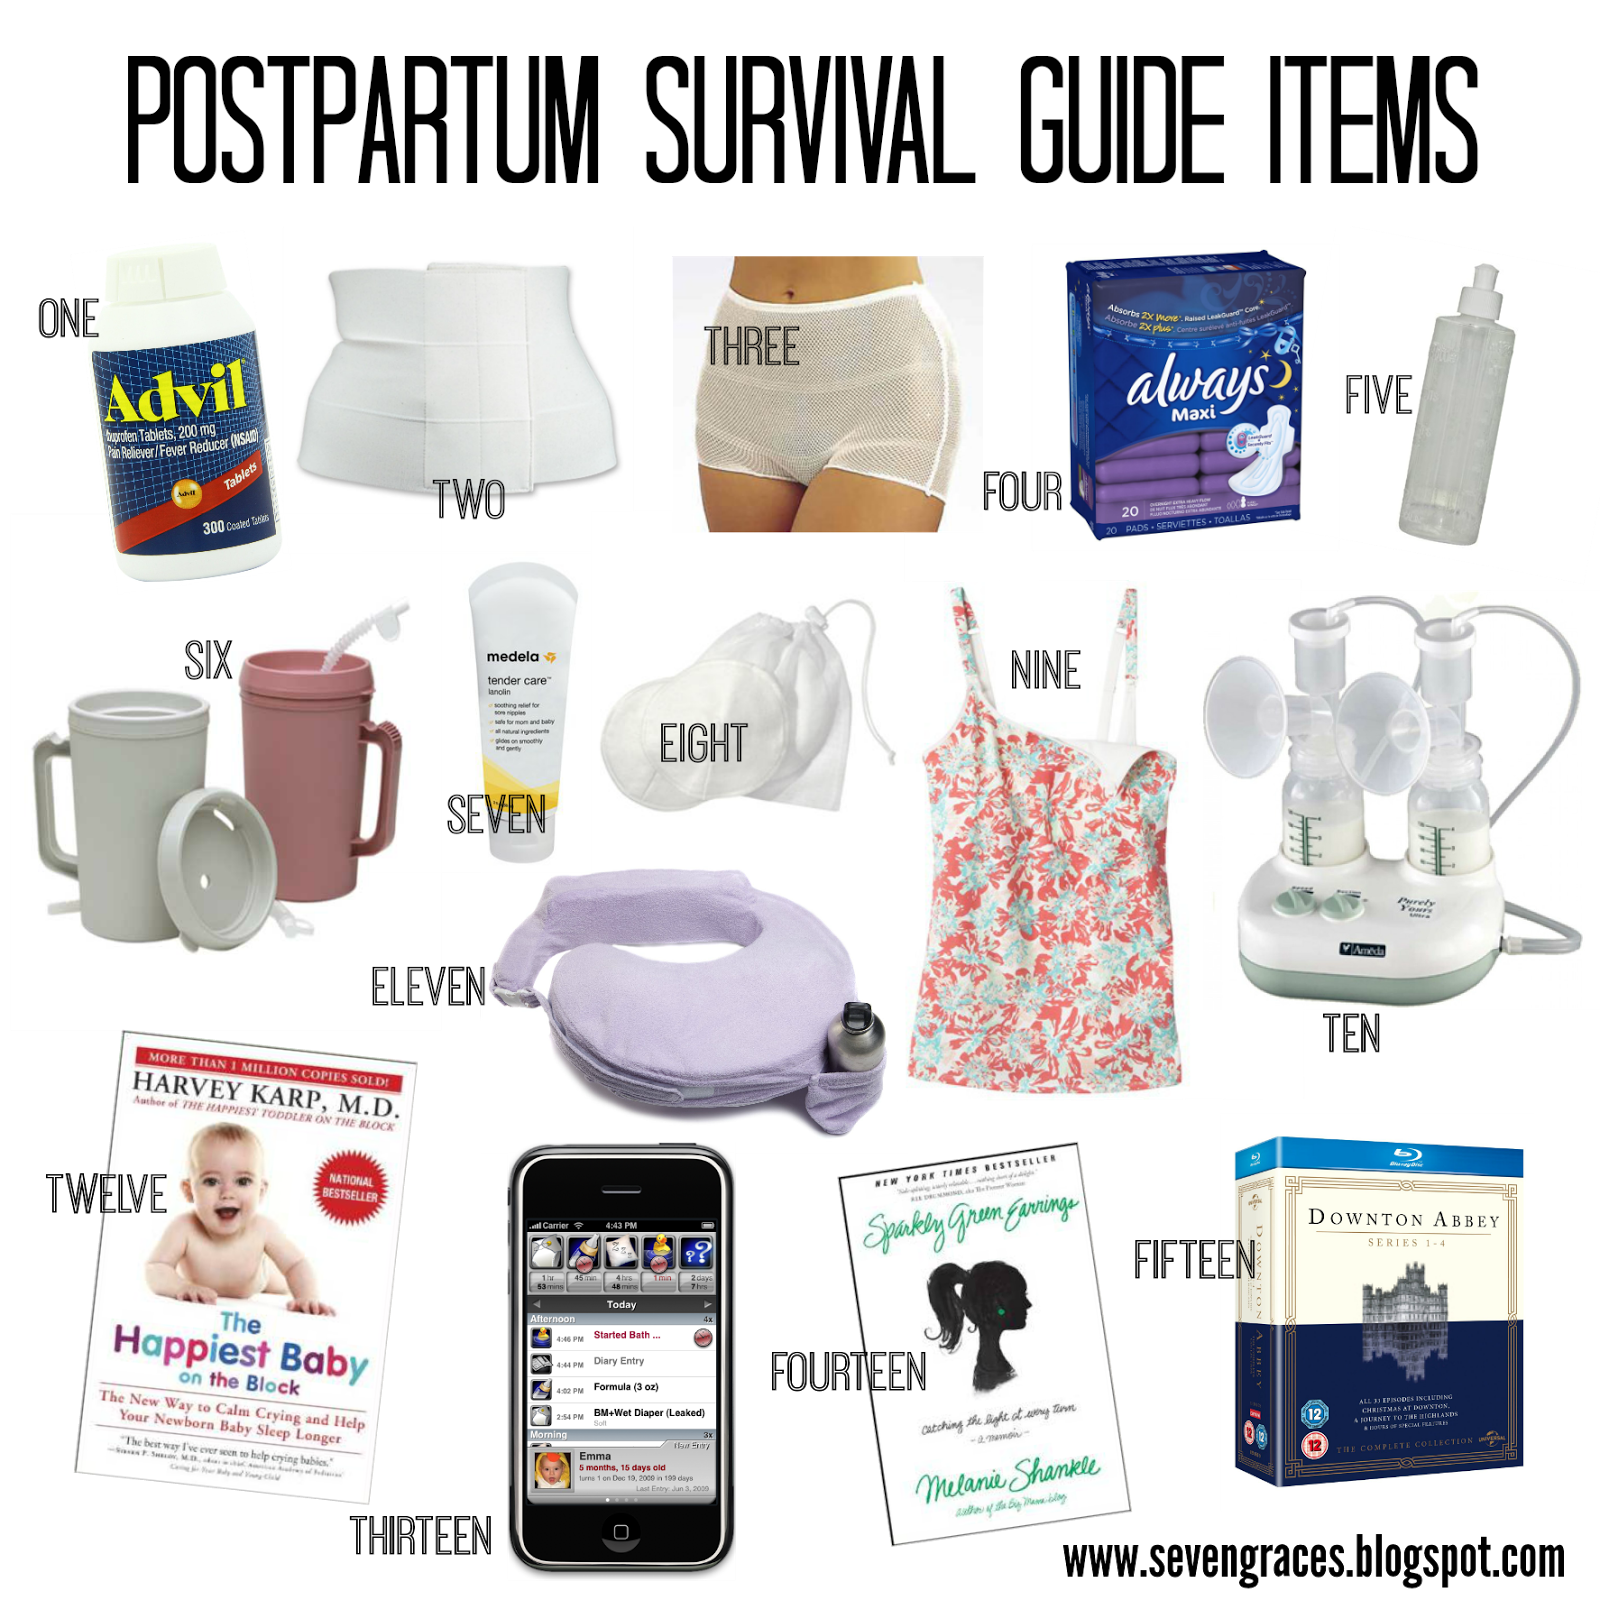 Postpartum Survival Guide: C-Section Recovery